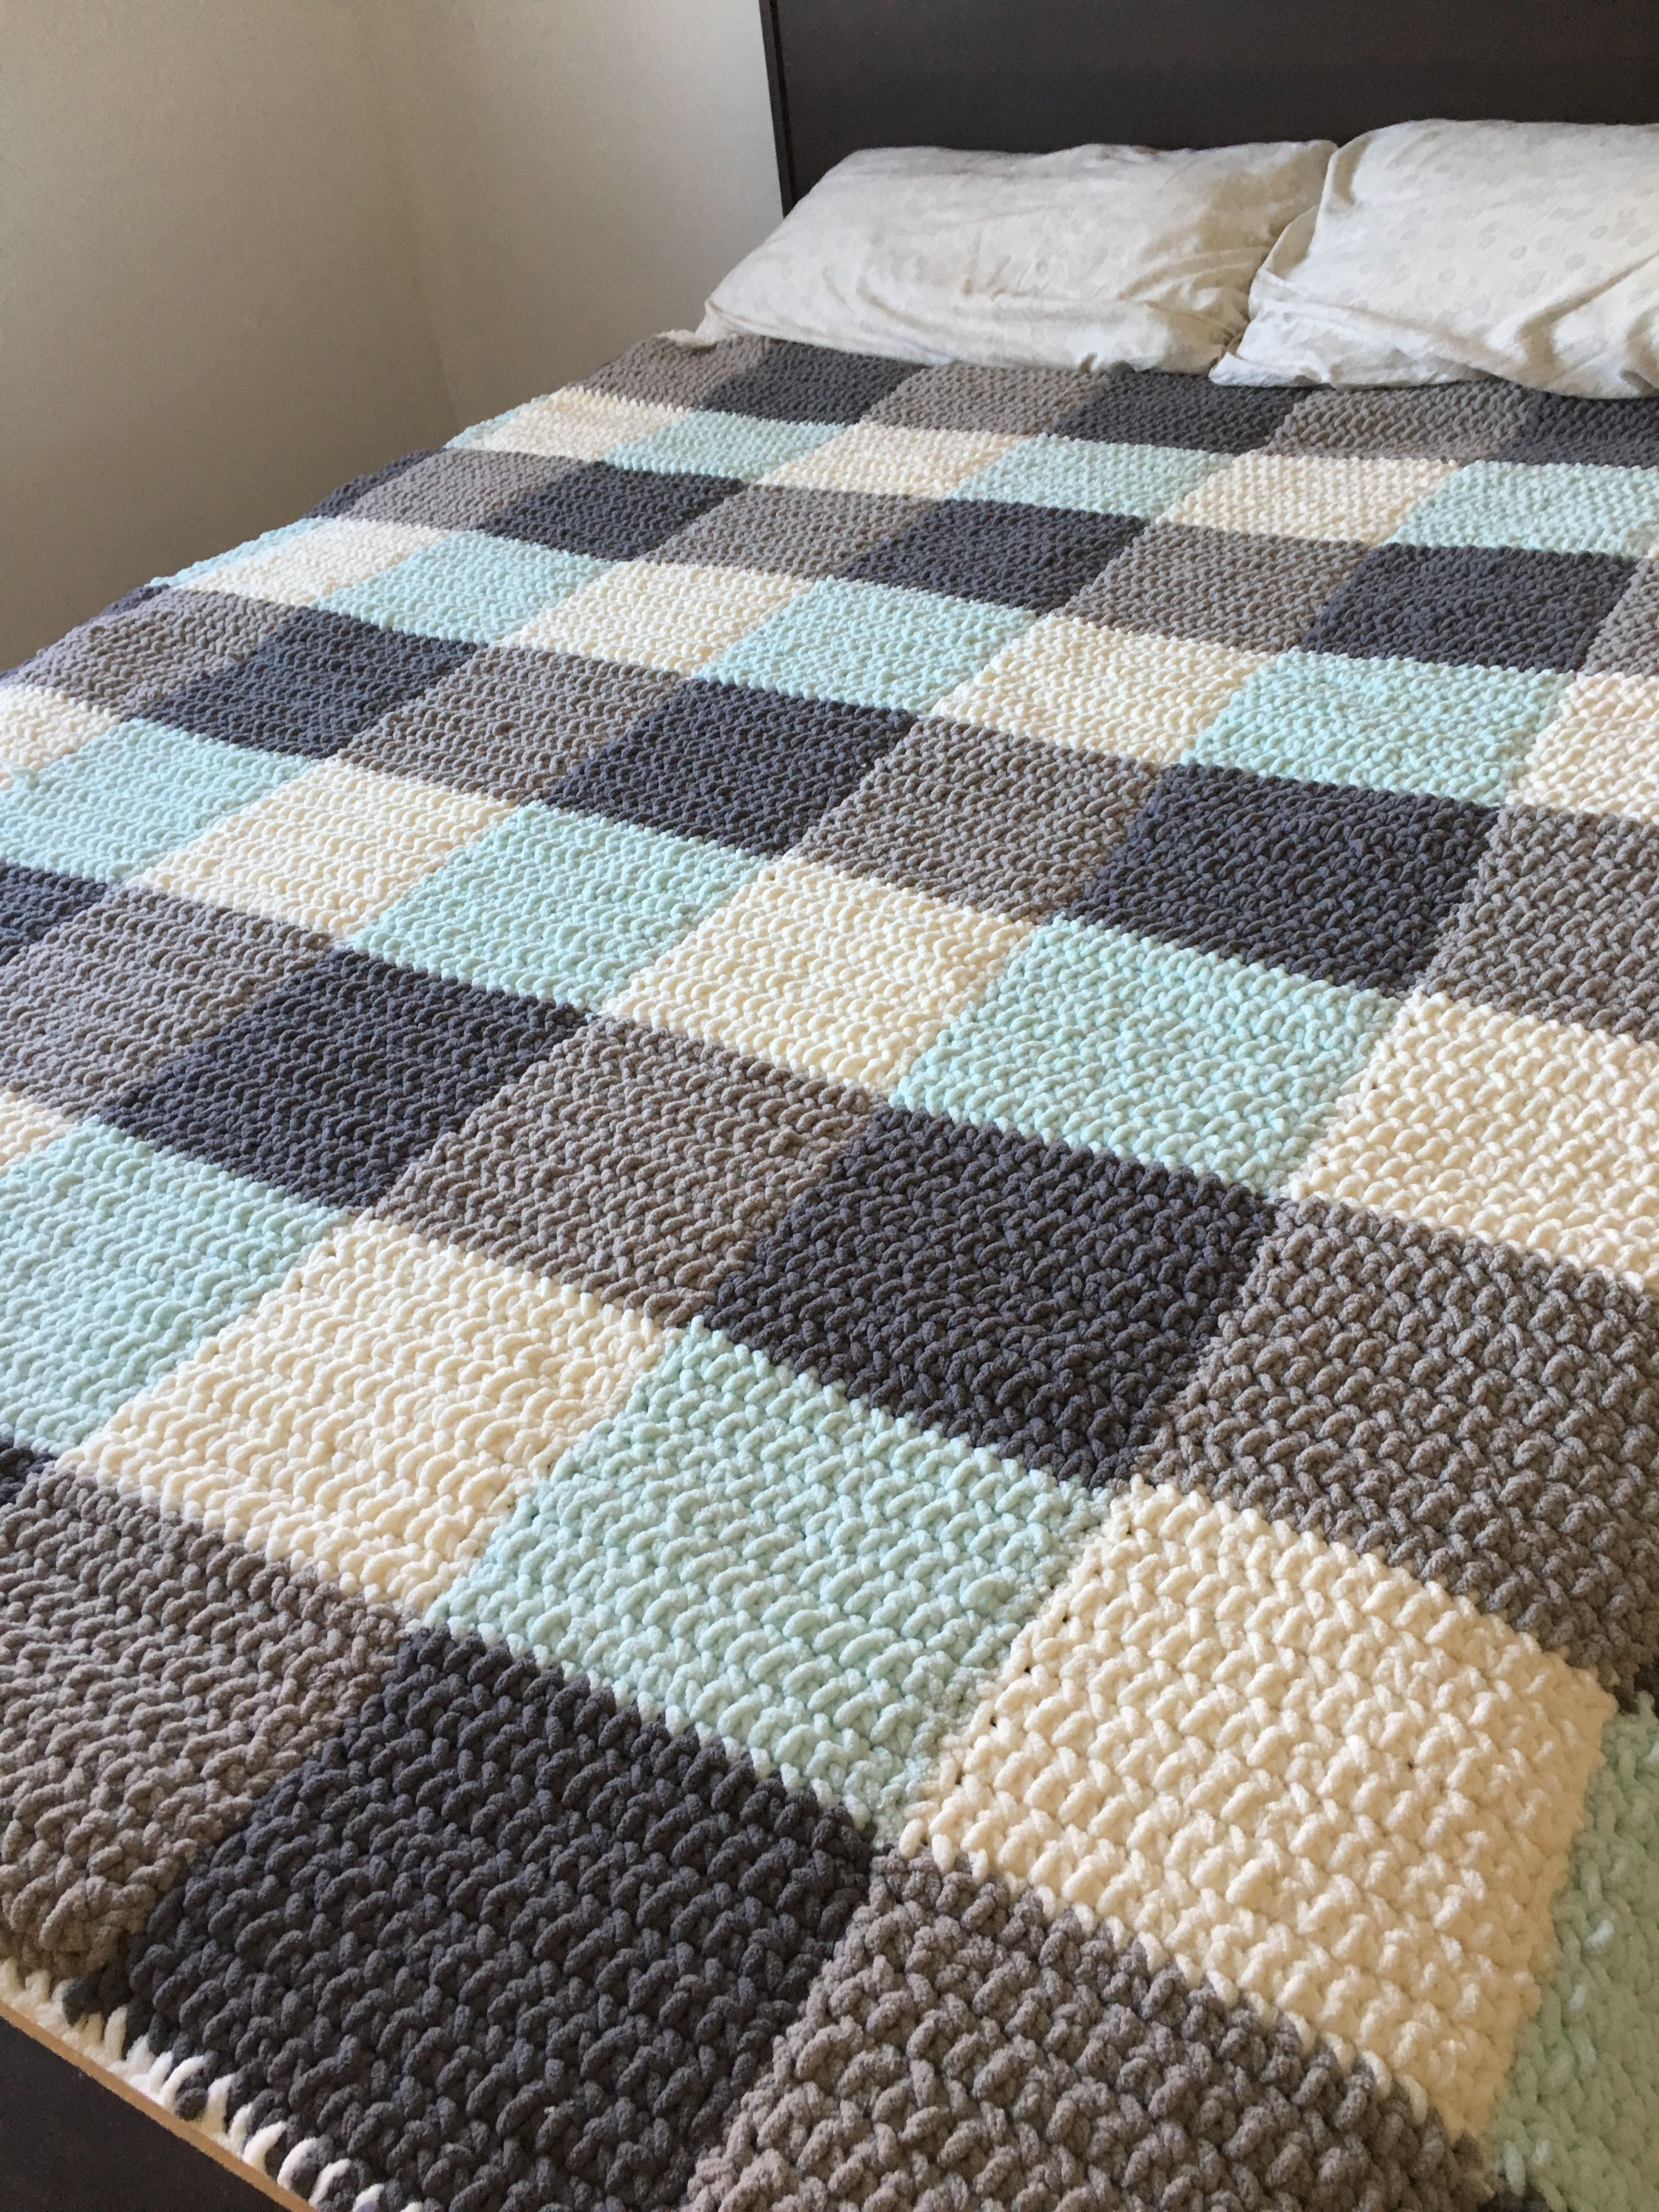 My new Blue Gingham or HeeHaw Plaid Blanket made with Bernat Blanket ...